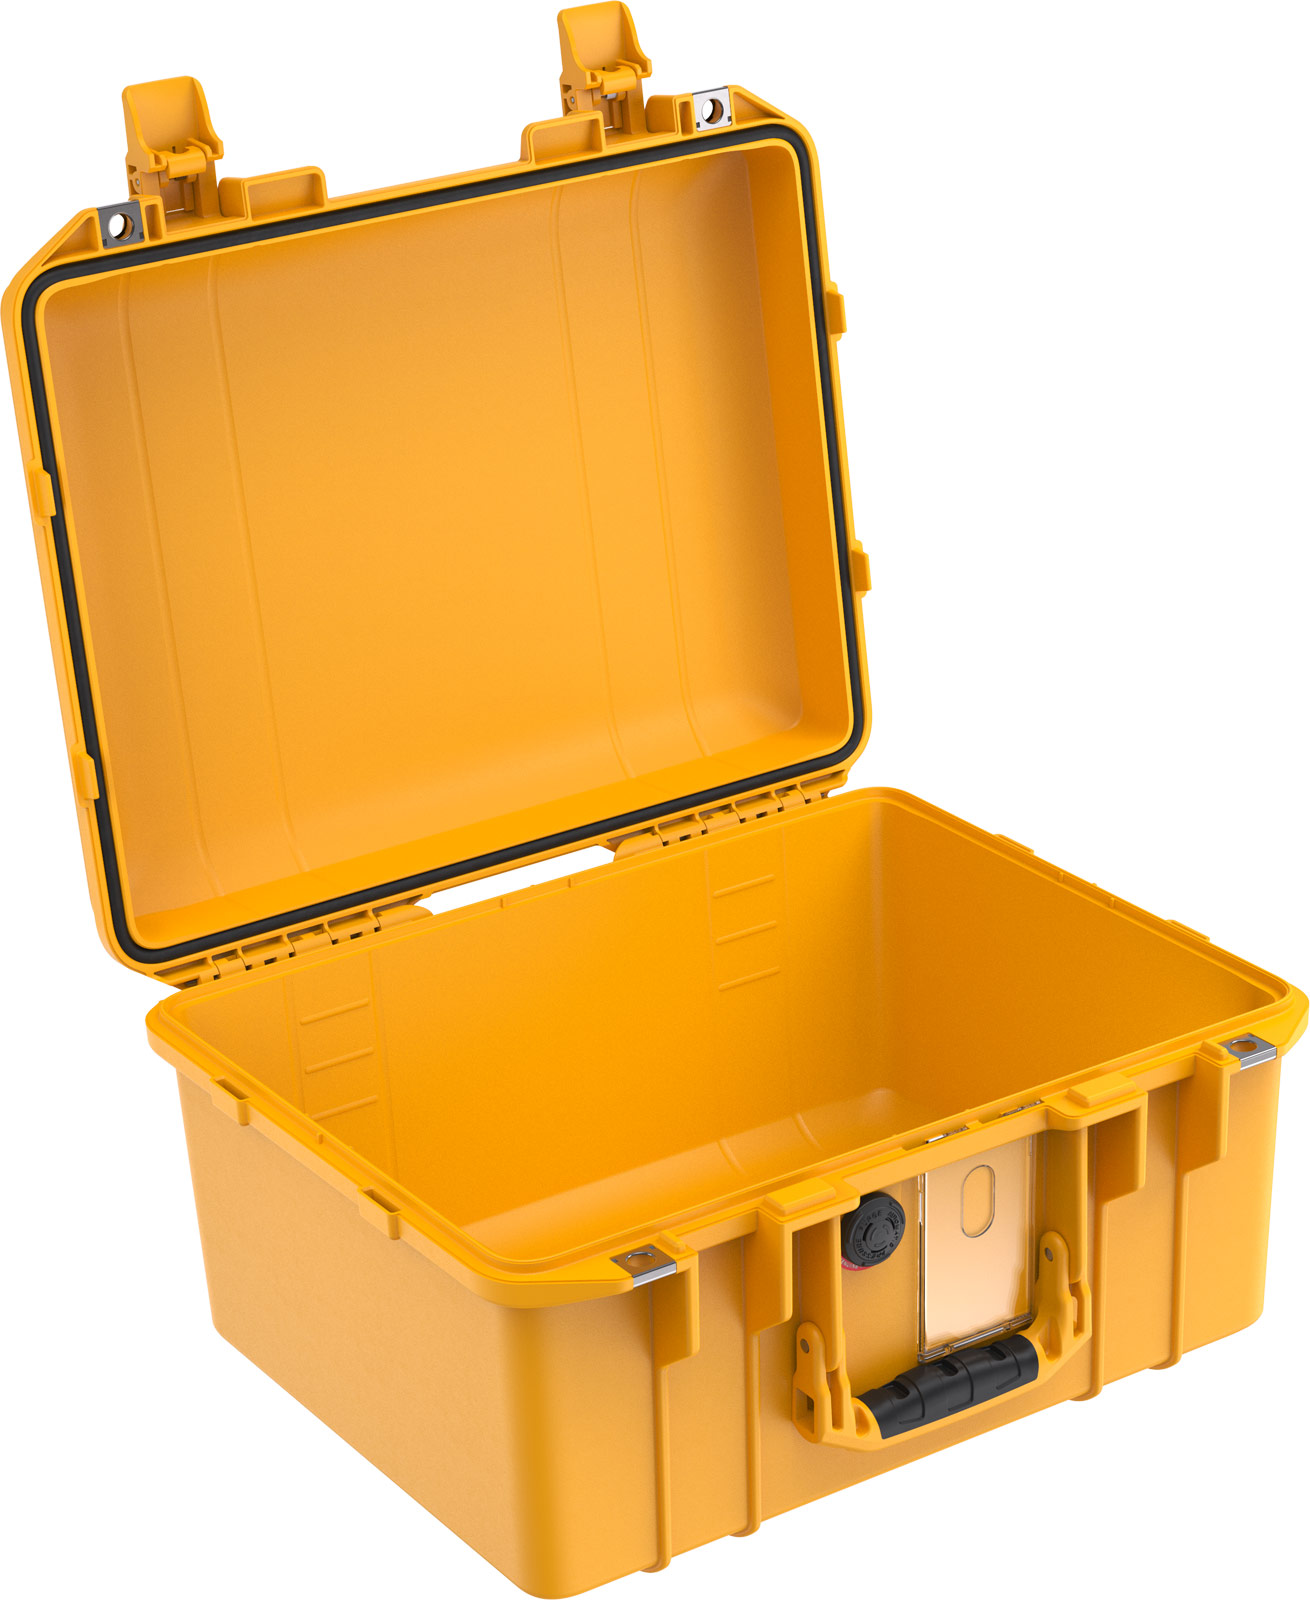 pelican air 1507 yellow luggage case